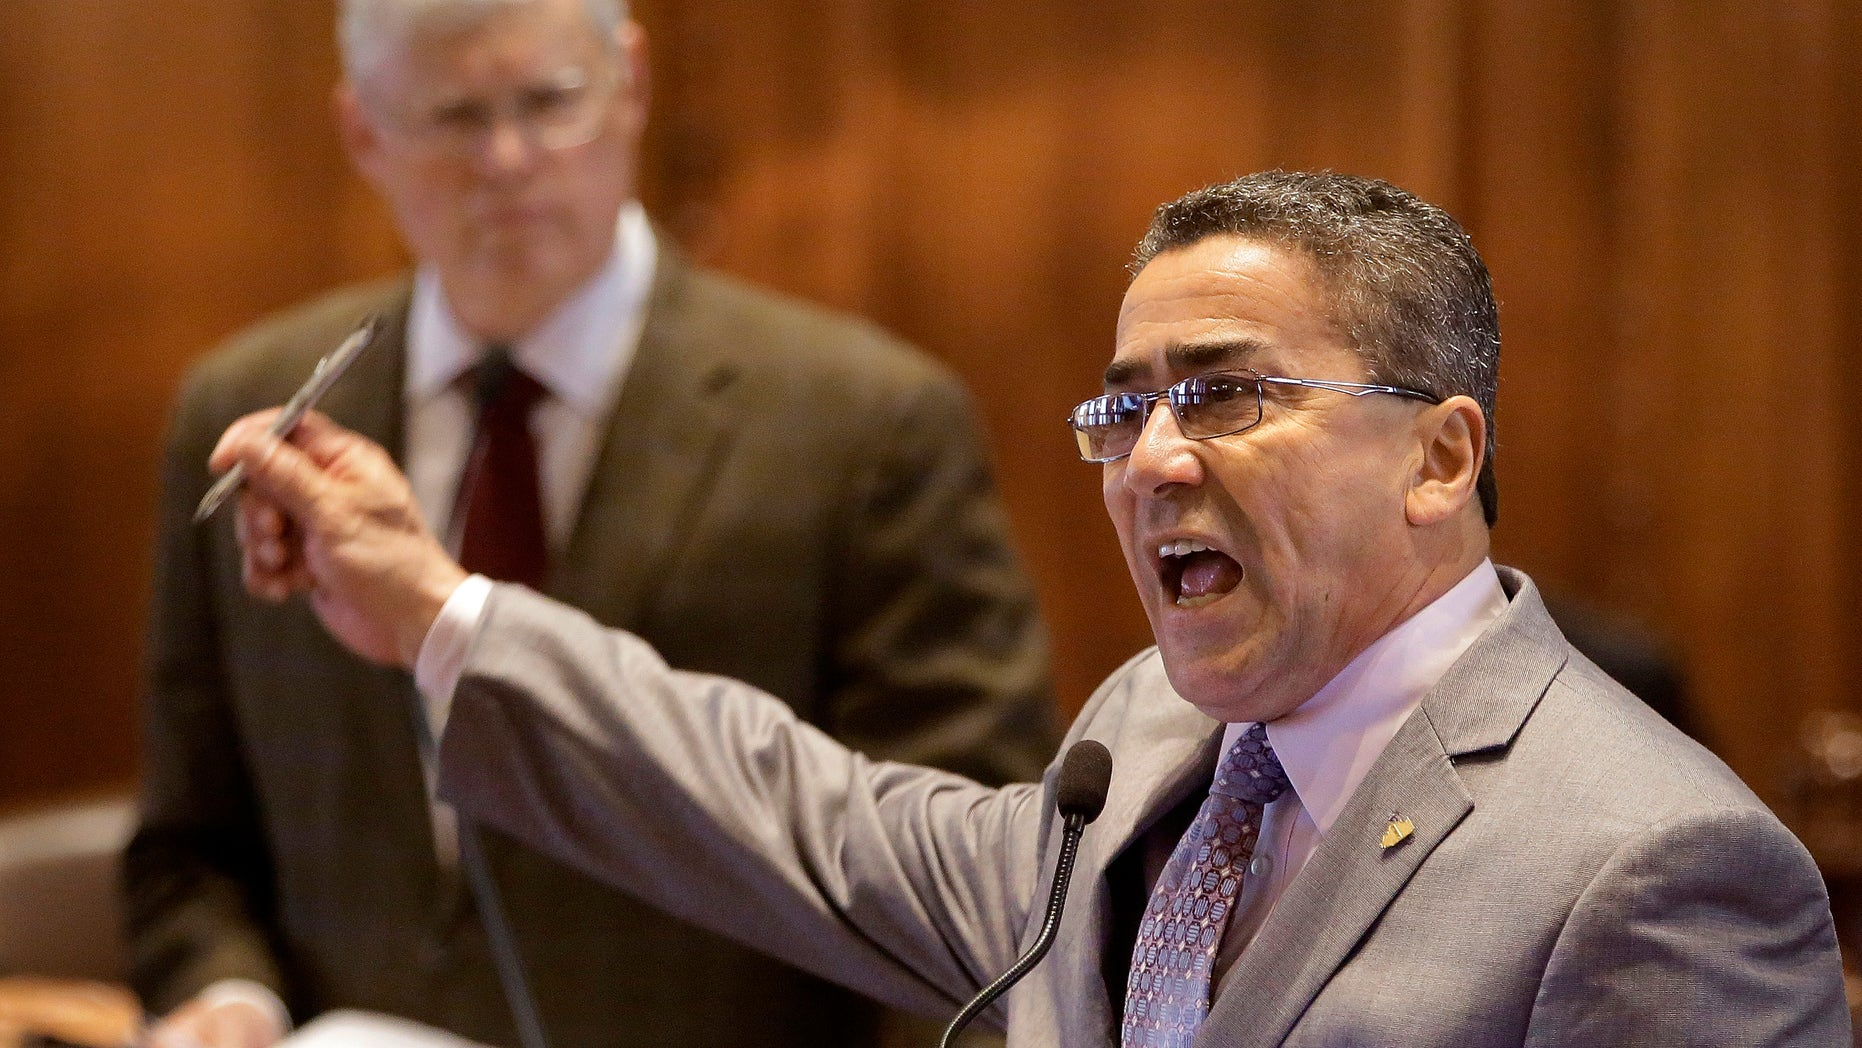 Illinois Sen. William Delgado, D-Chicago, agues medical marijuana legislation while on the Senate floor during session at the Illinois State Capitol Friday, May 17, 2013 in Springfield, Ill. (AP Photo/Seth Perlman)